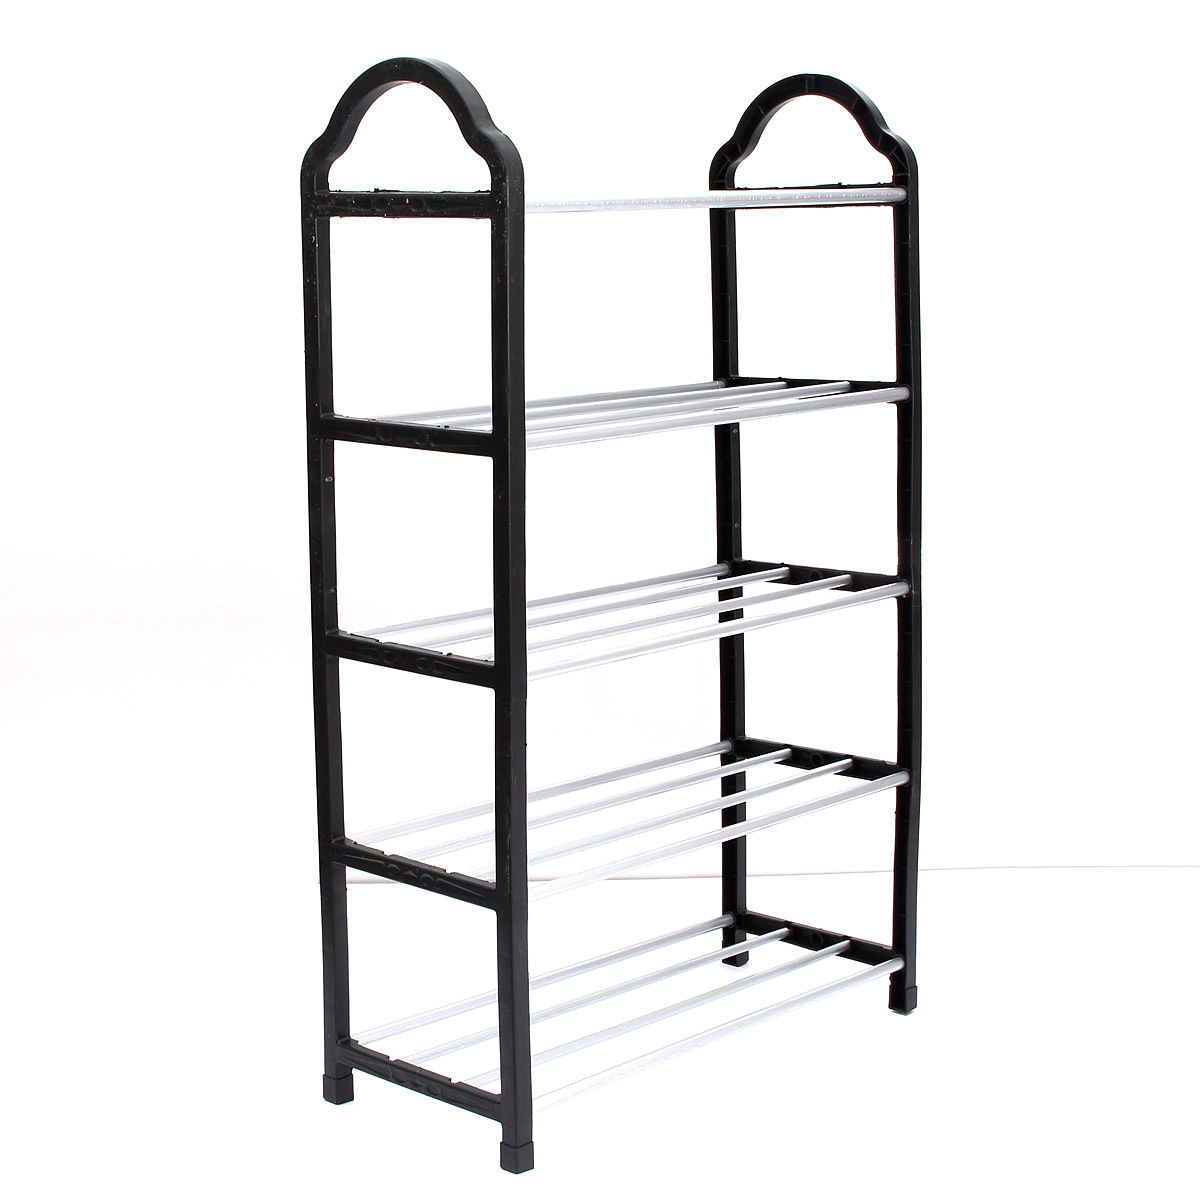 купить  PHFU 5 Tier Home Storage Organizer Cabinet Shelf Space Saving Shoe Tower Rack Stand Black  онлайн